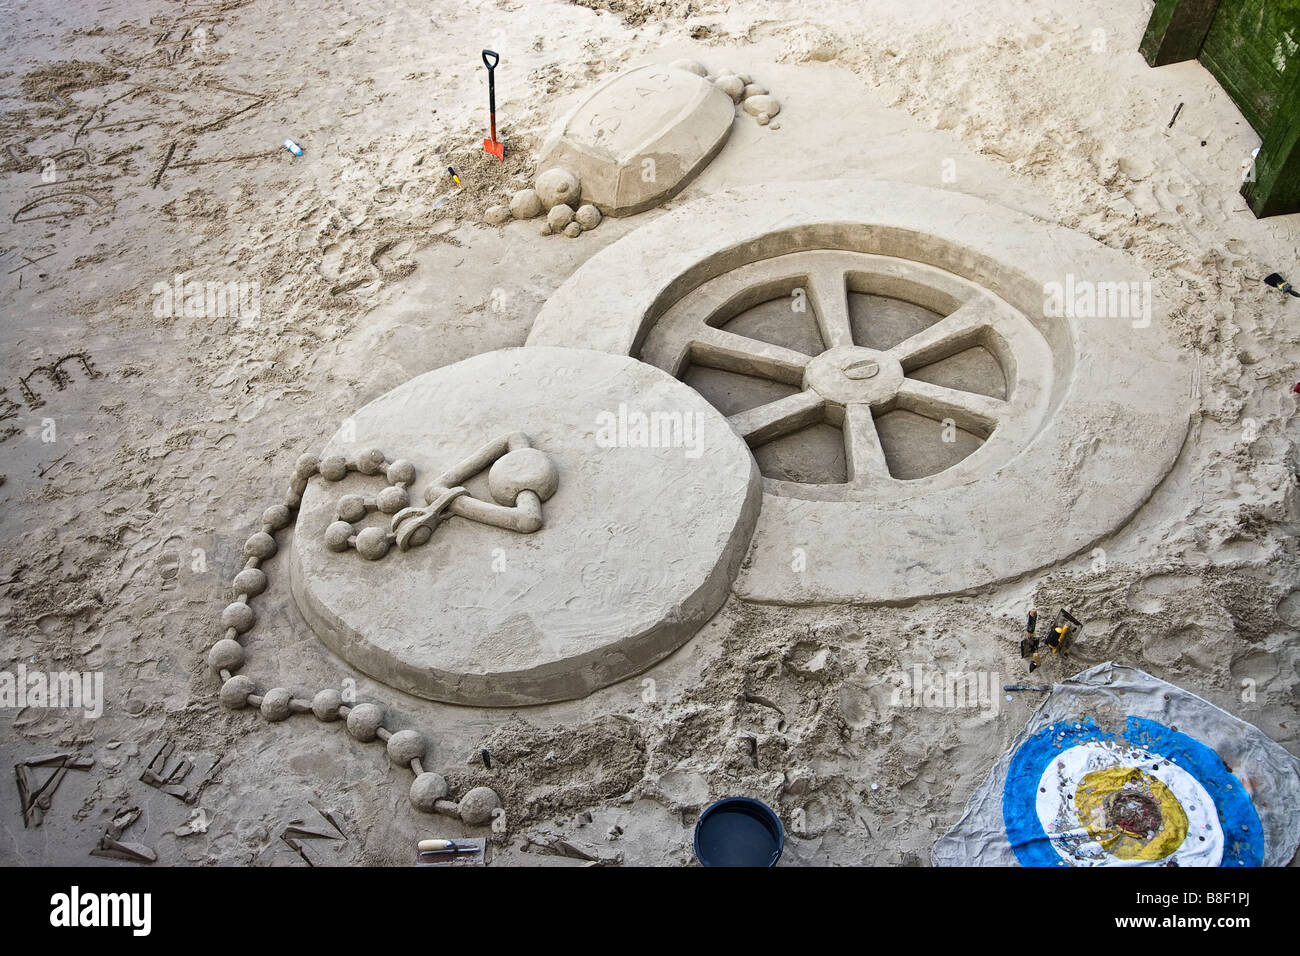 A plug hole made of sand - Stock Image